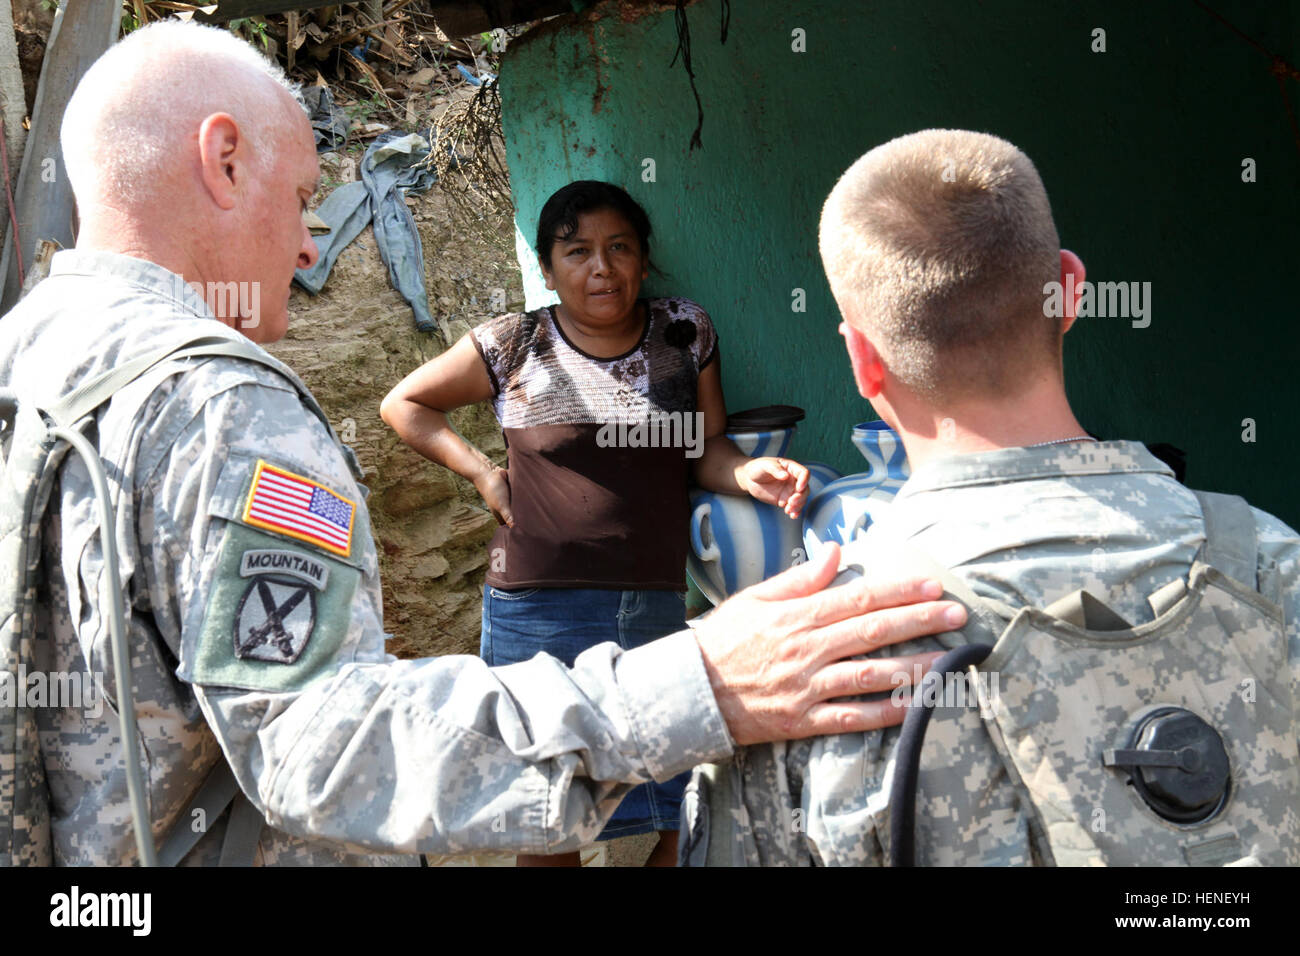 Master Sgt. John Barneson and Spc. Paul Gentle, assigned to the 318th PsyOp Company, speaks with a Guatemalan woman, Stock Photo